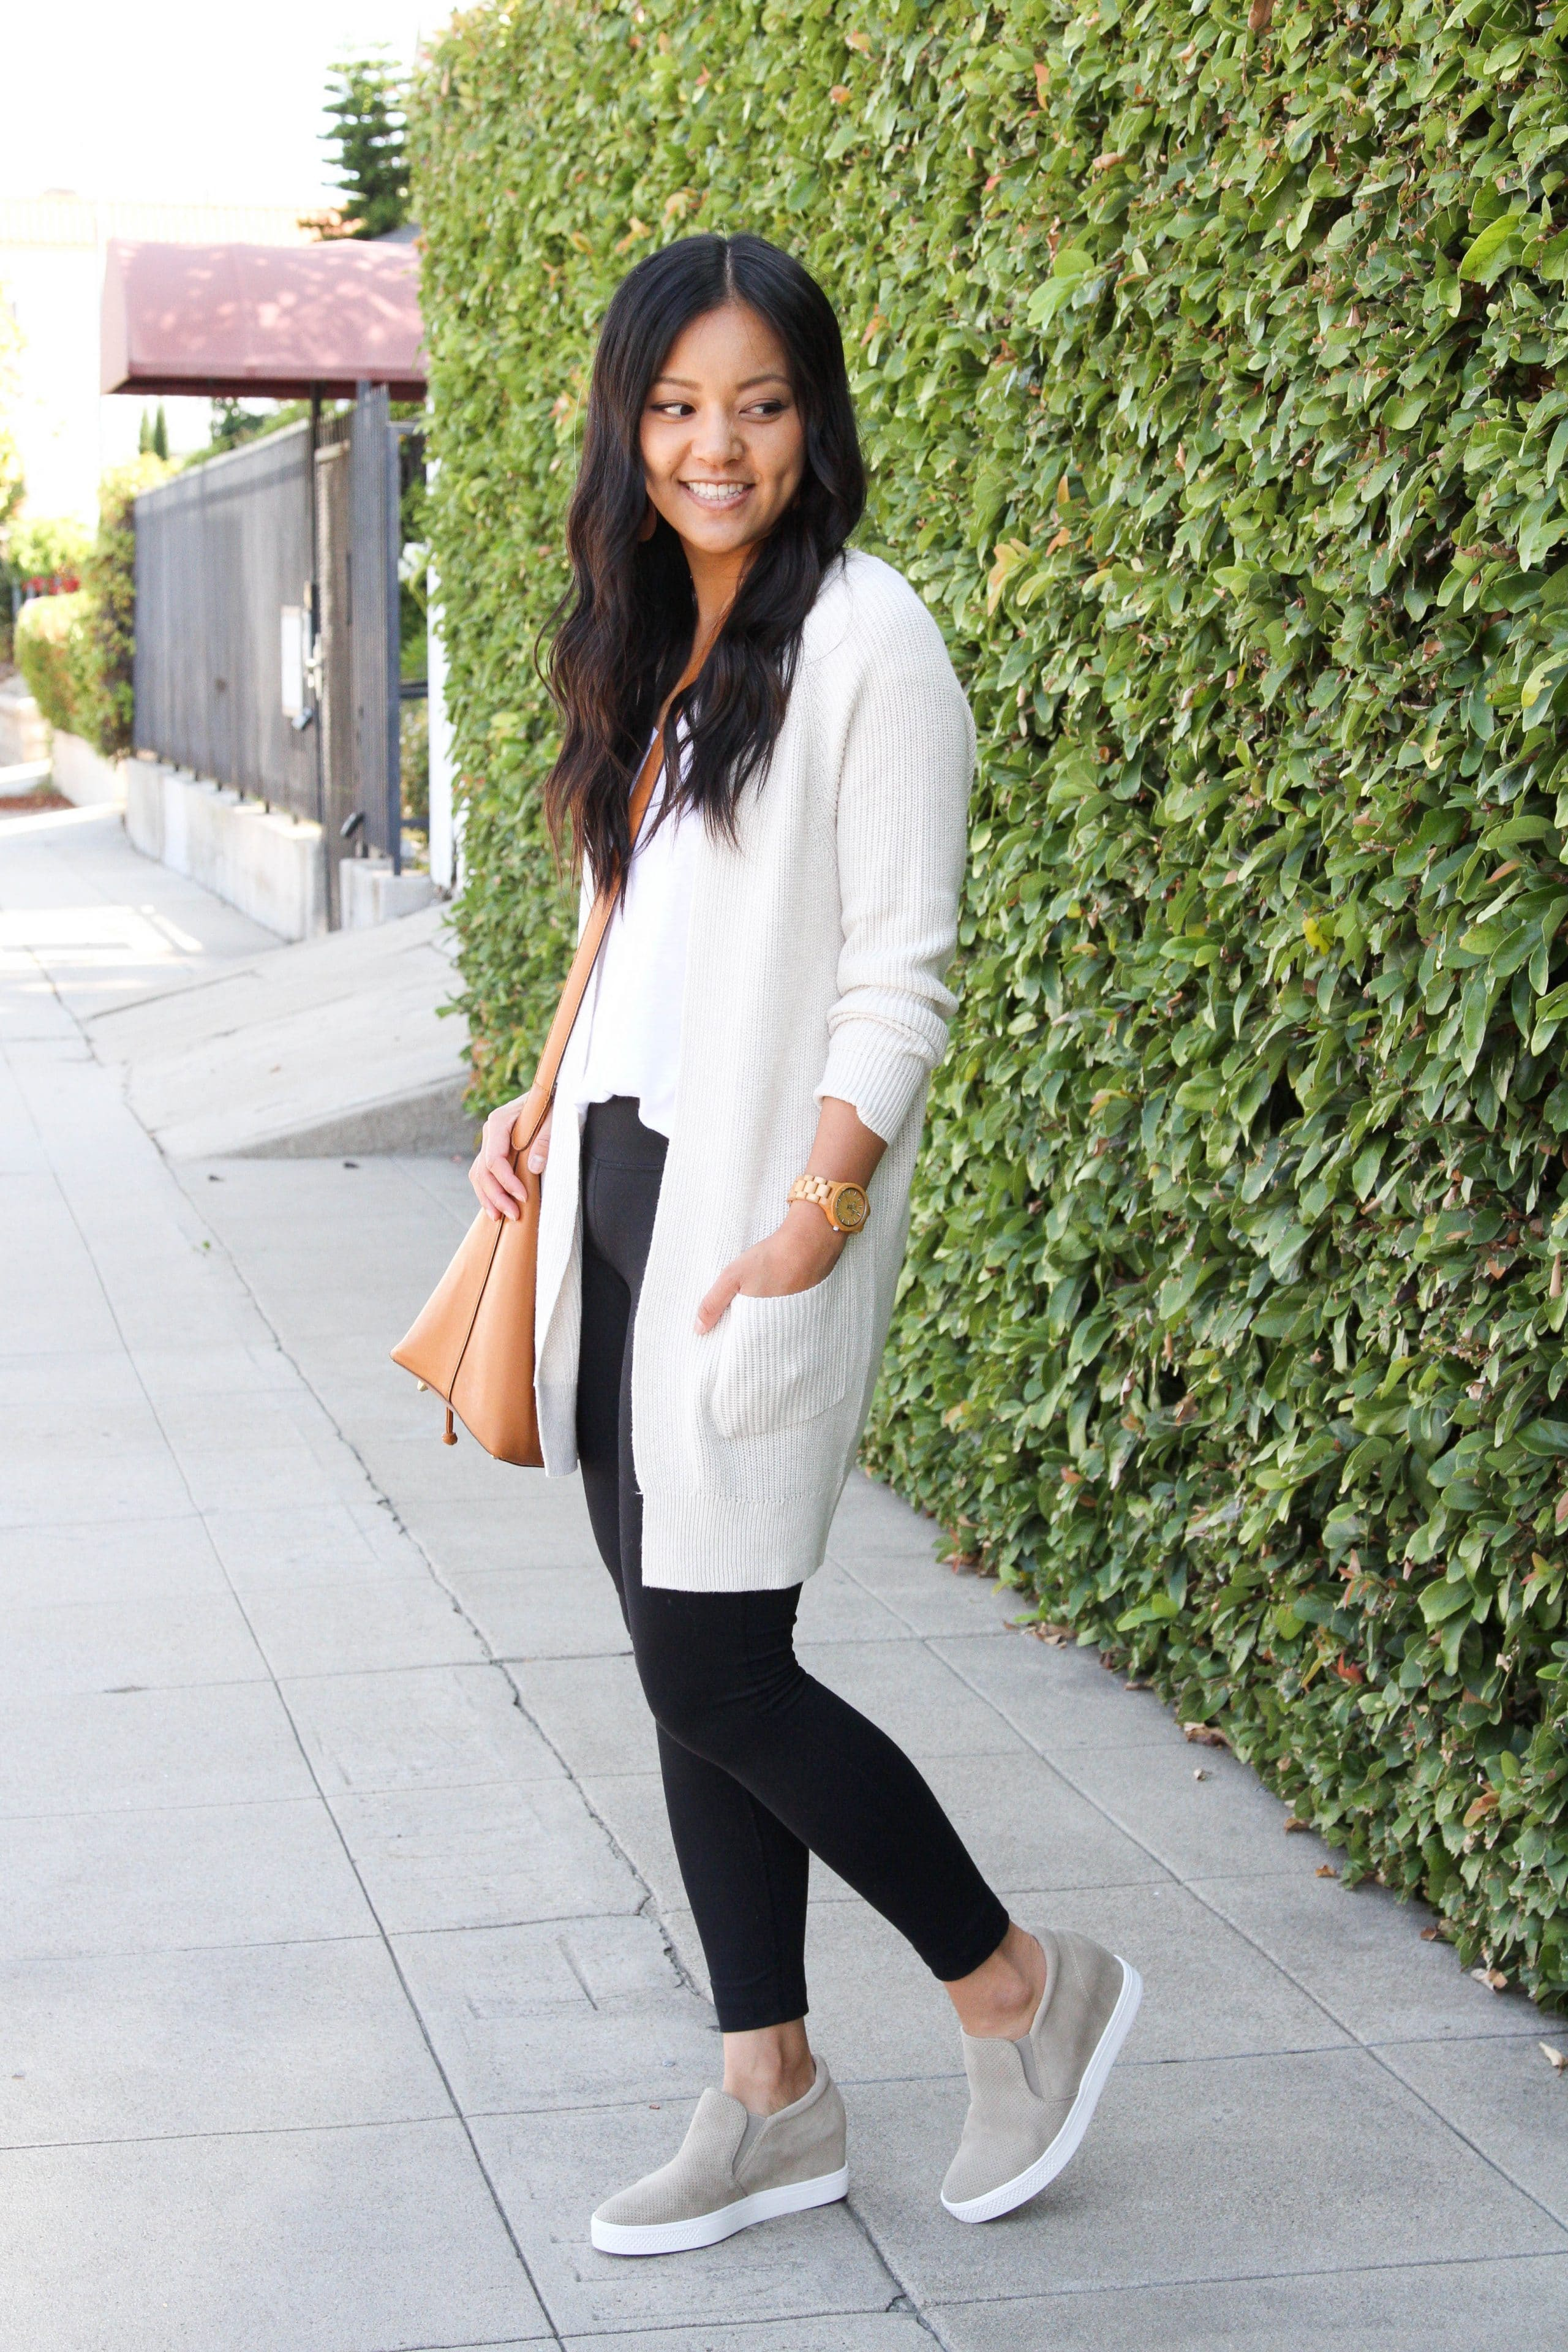 cream cardigan + white tee + black leggings + taupe sneakers